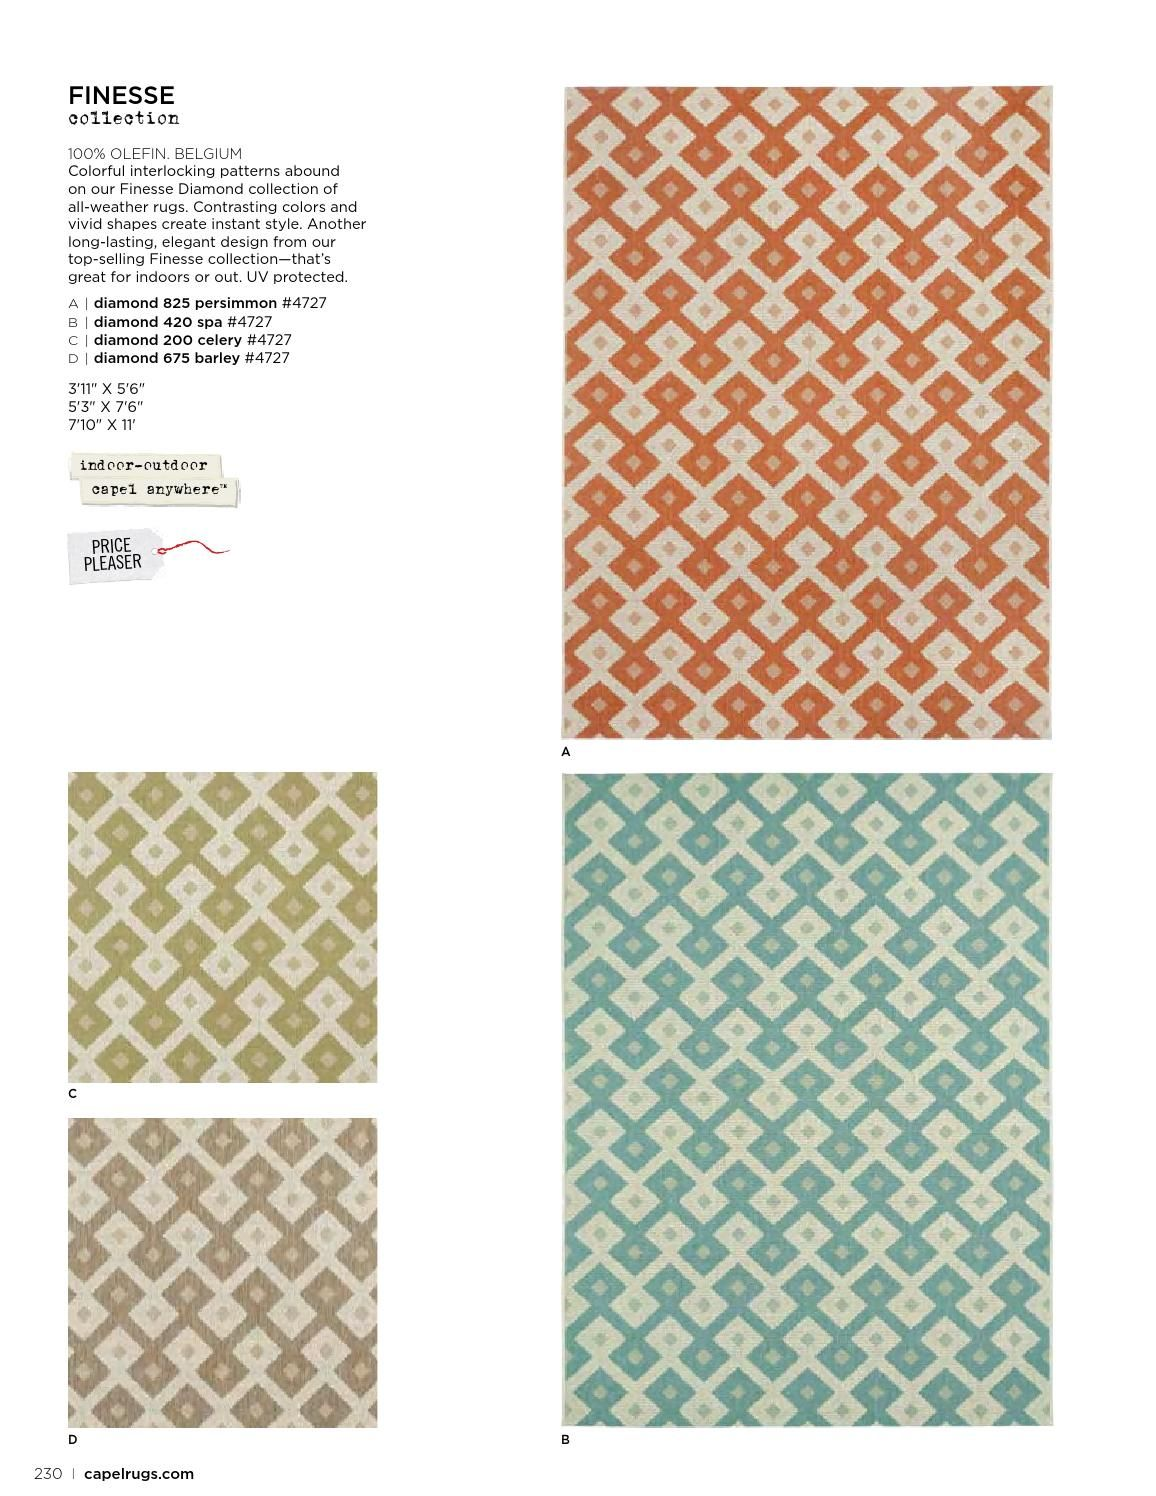 Outdoor rugs ISSUU - Capel Rugs Catalog 2014 by Capel Rugs